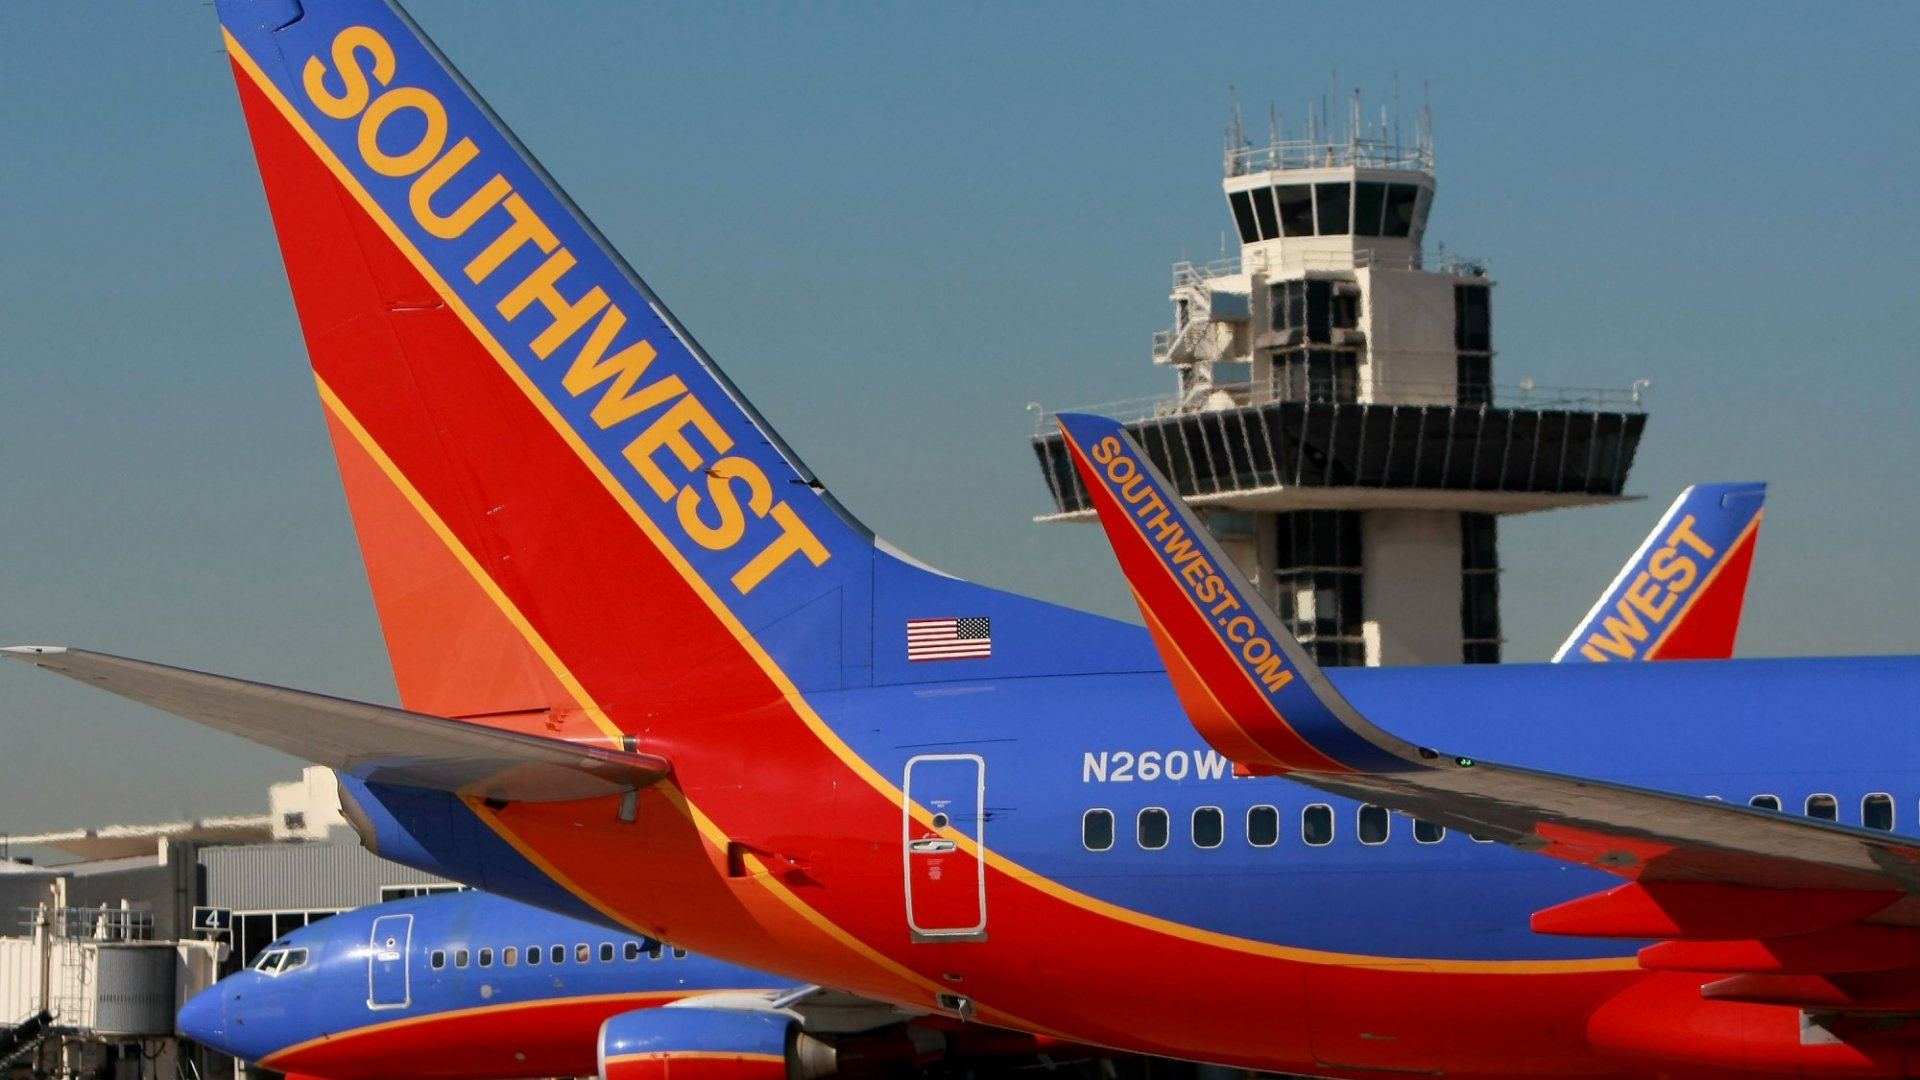 My Southwest Airlines Flight Was Delayed Twice. What They Did Next Left Me Speechless.